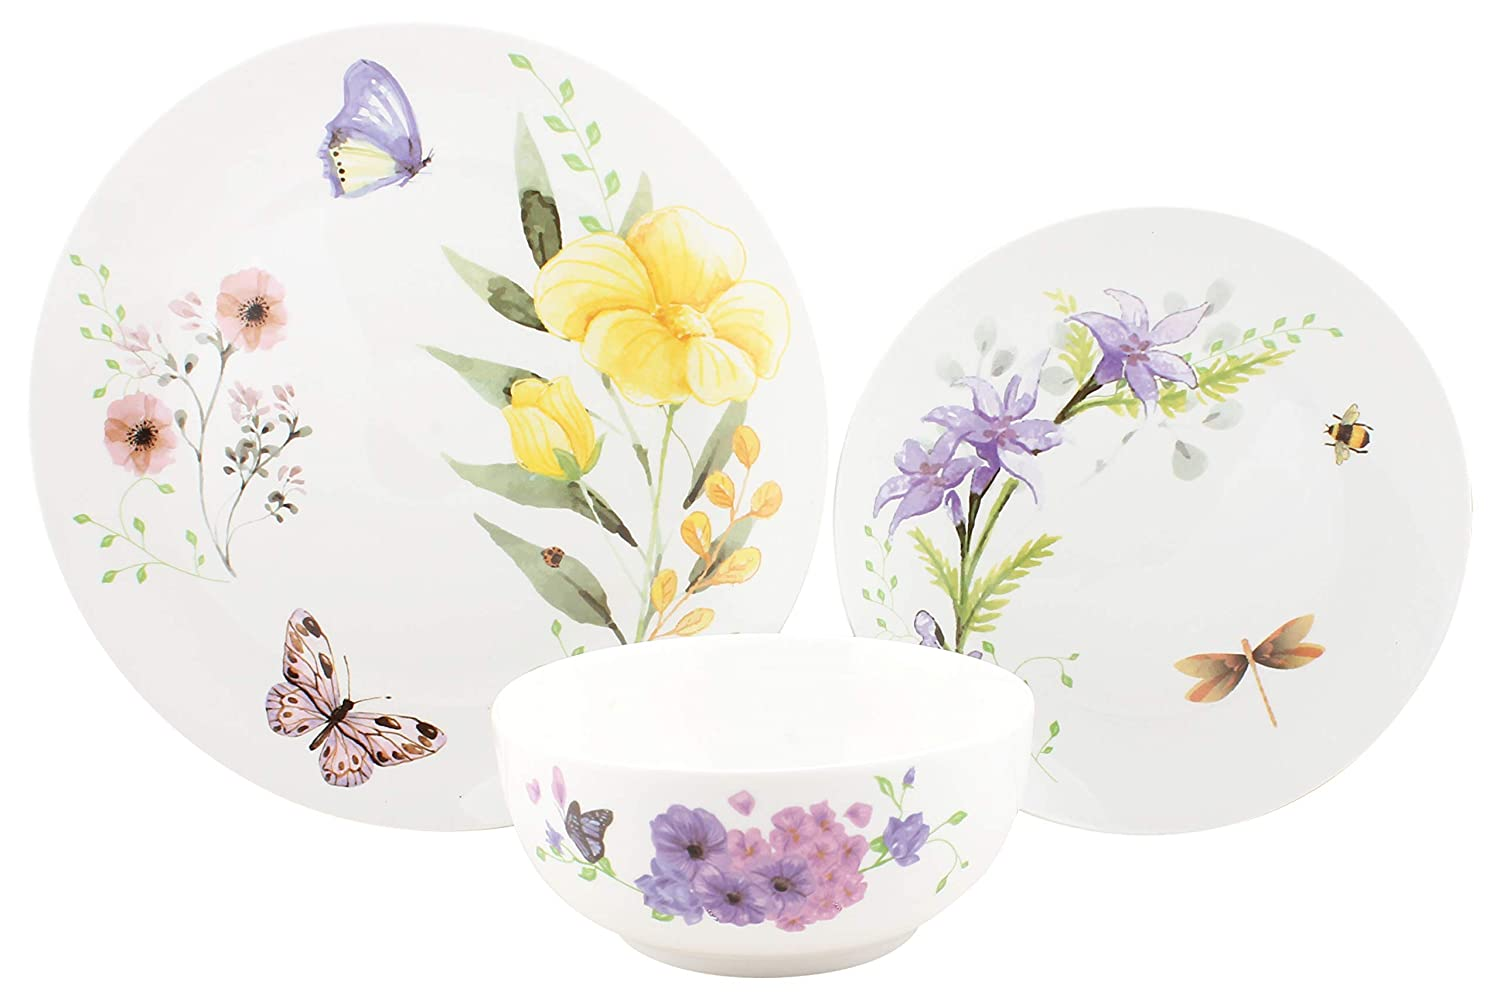 Melange 18-Piece Place Setting Premium Porcelain Dinnerware Set (Butterfly Garden Collection) | Service for 6 | Microwave, Dishwasher & Oven Safe | Dinner Plate, Salad Plate & Soup Bowl 6 Each)